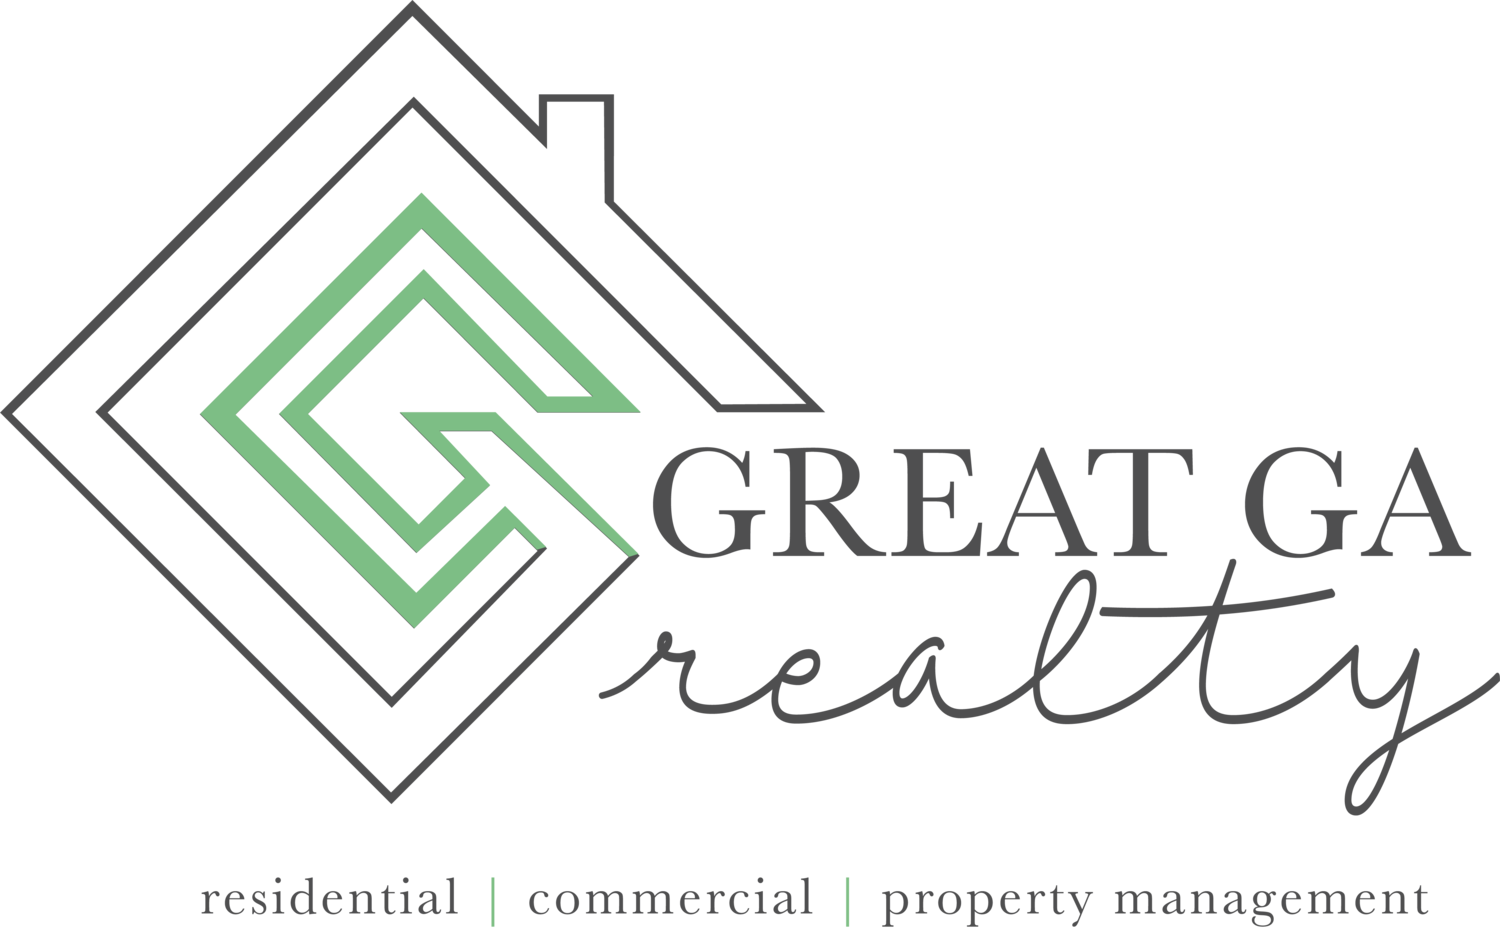 Great GA Real estate